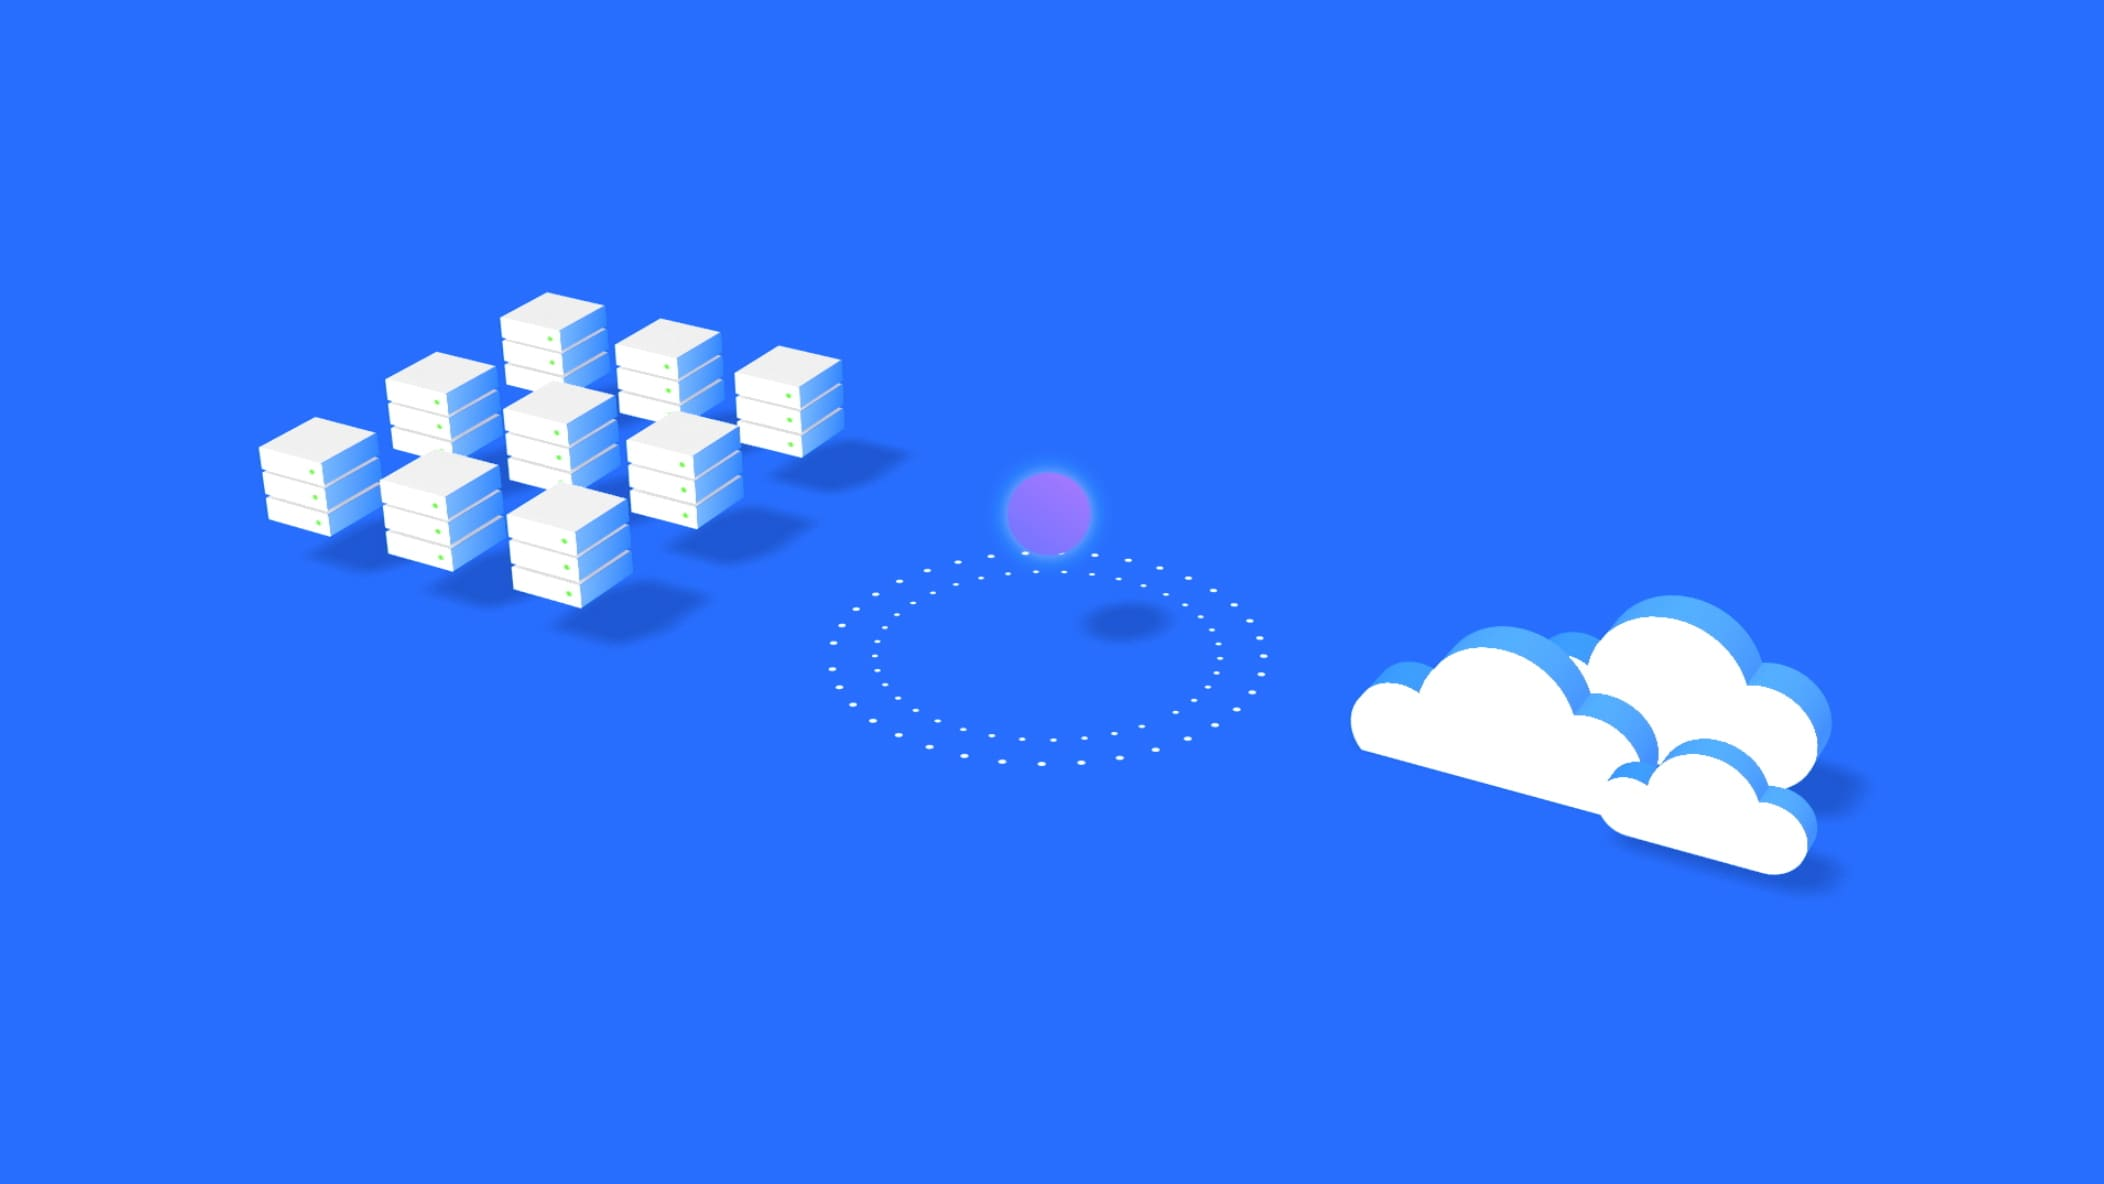 white boxes, circle and white cloud on blue background